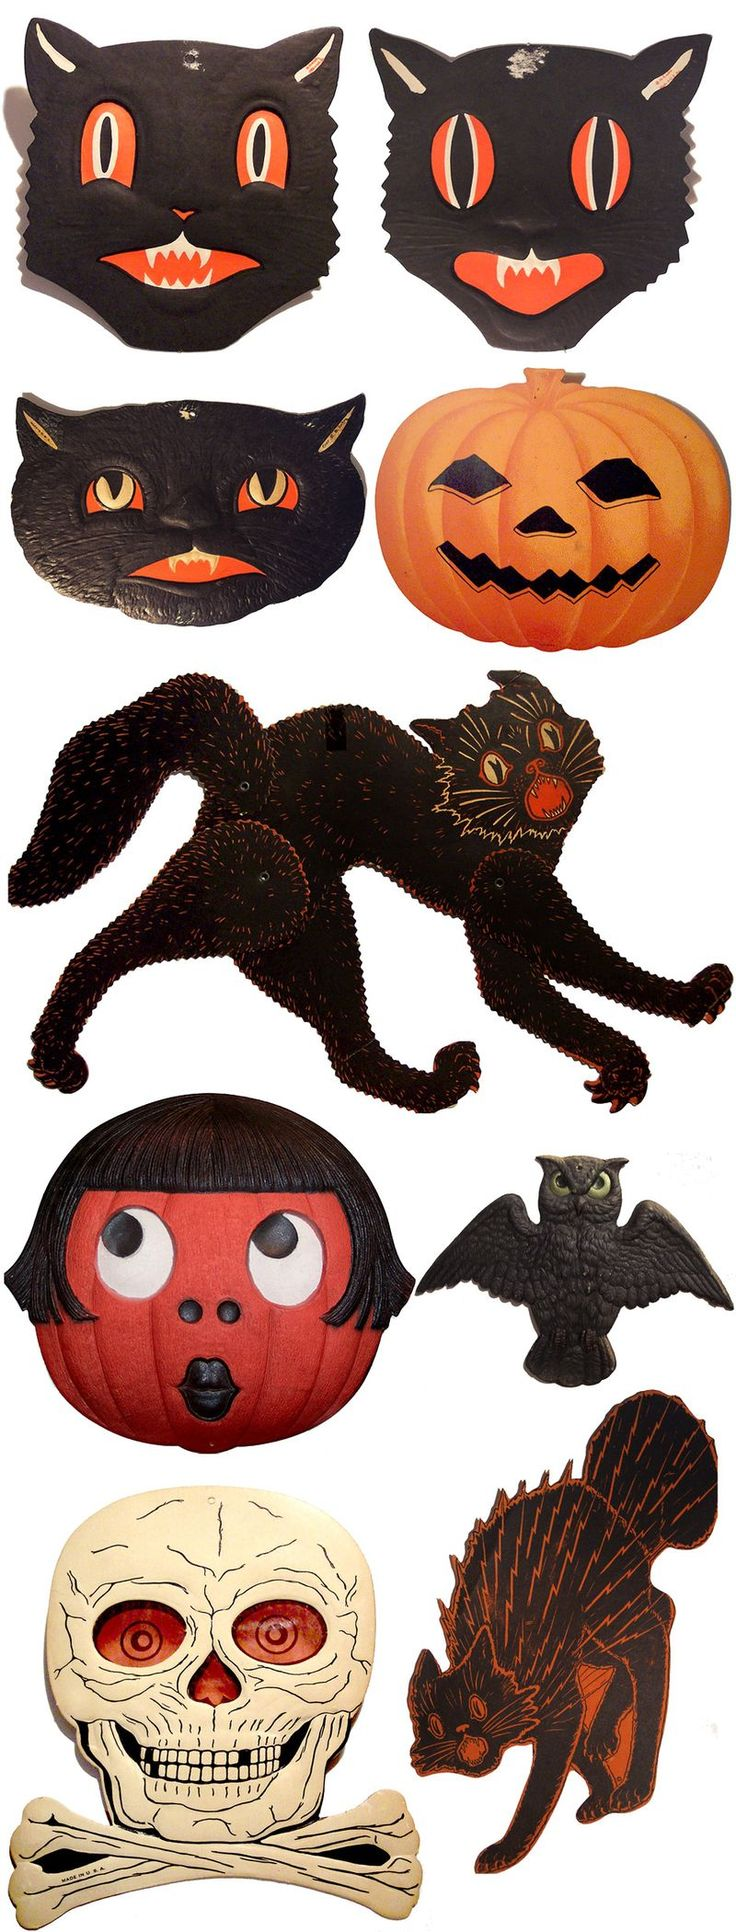 Vintage halloween paper decorations - A Fantastic Collection Of Vintage Paper Halloween Decorations